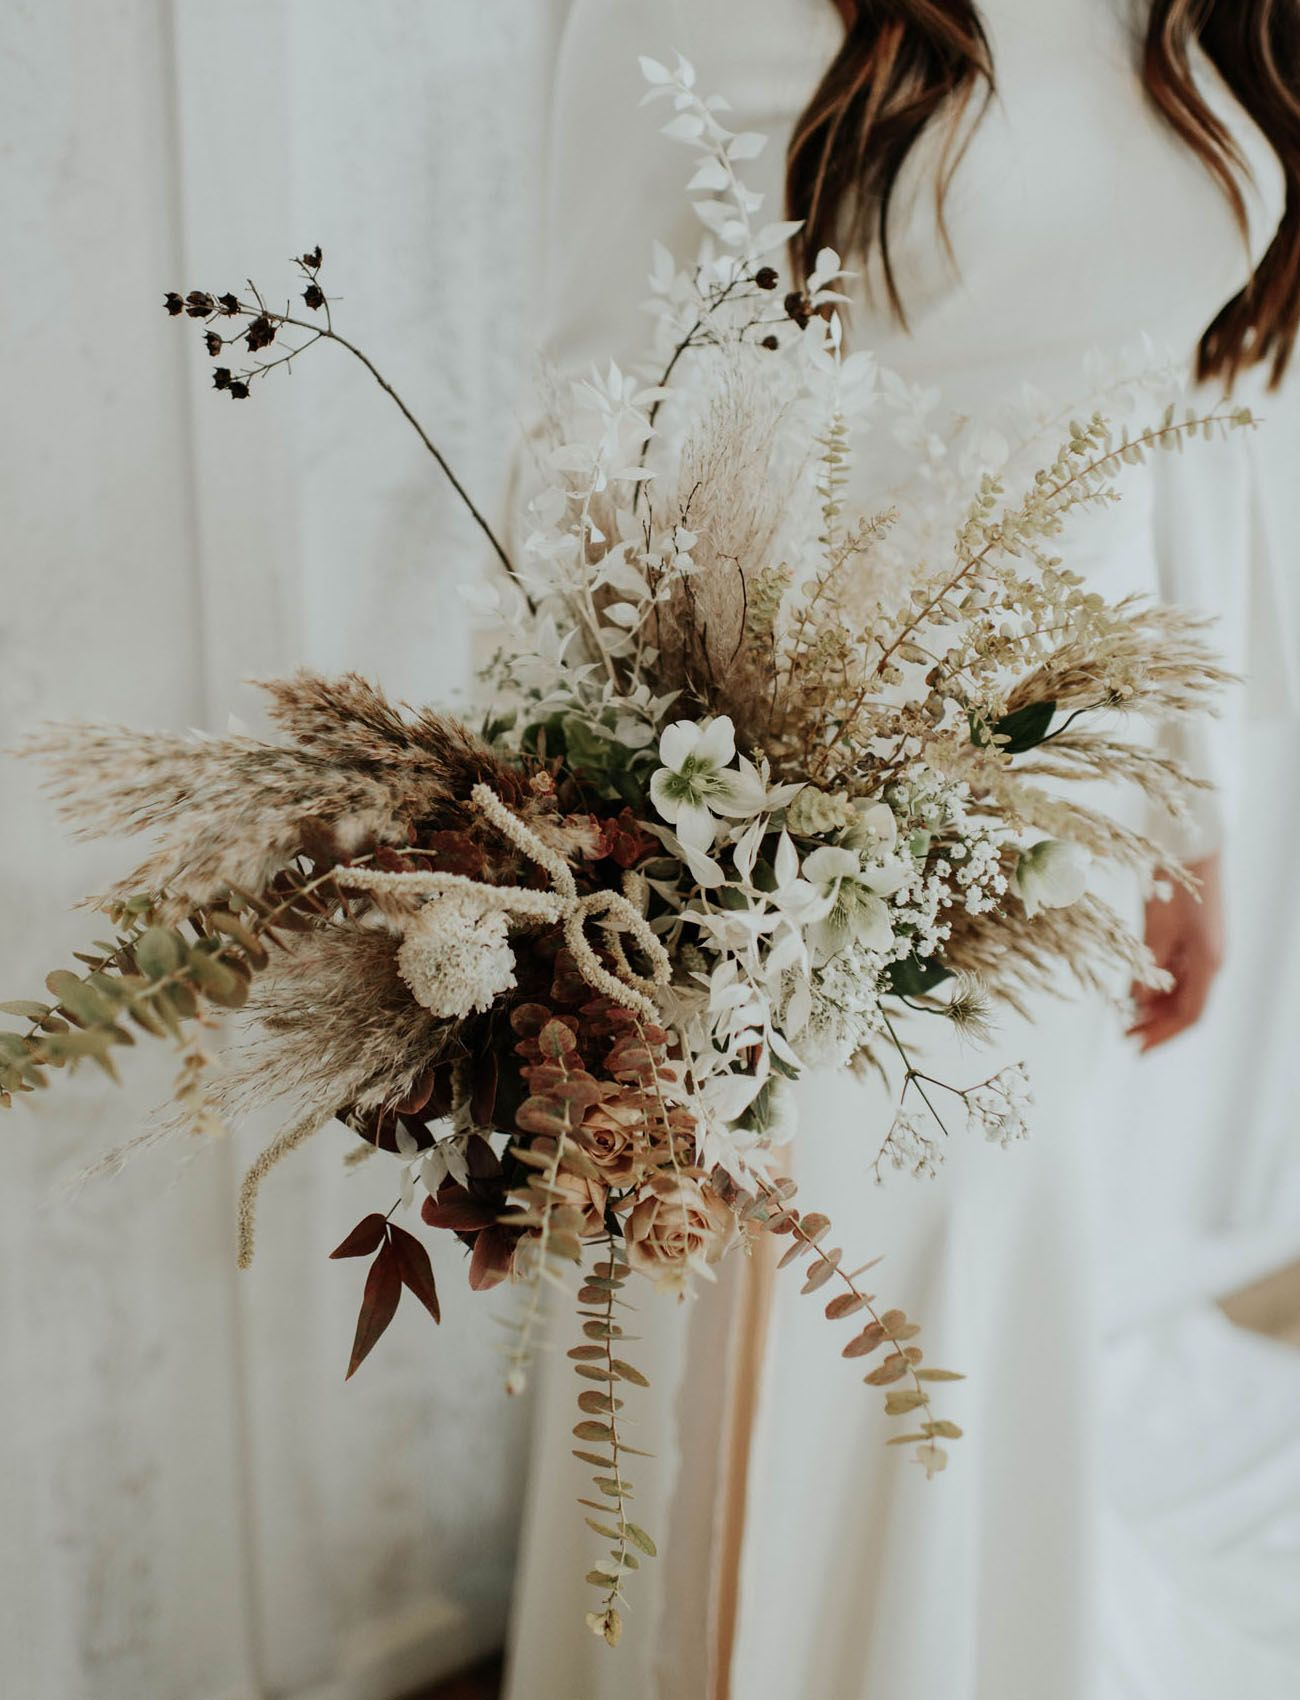 Muted Modern Wedding Inspiration With Dried Flower Arrangements Green Wedding Shoes Wedding Flower Trends Flower Bouquet Wedding Dried Flower Bouquet